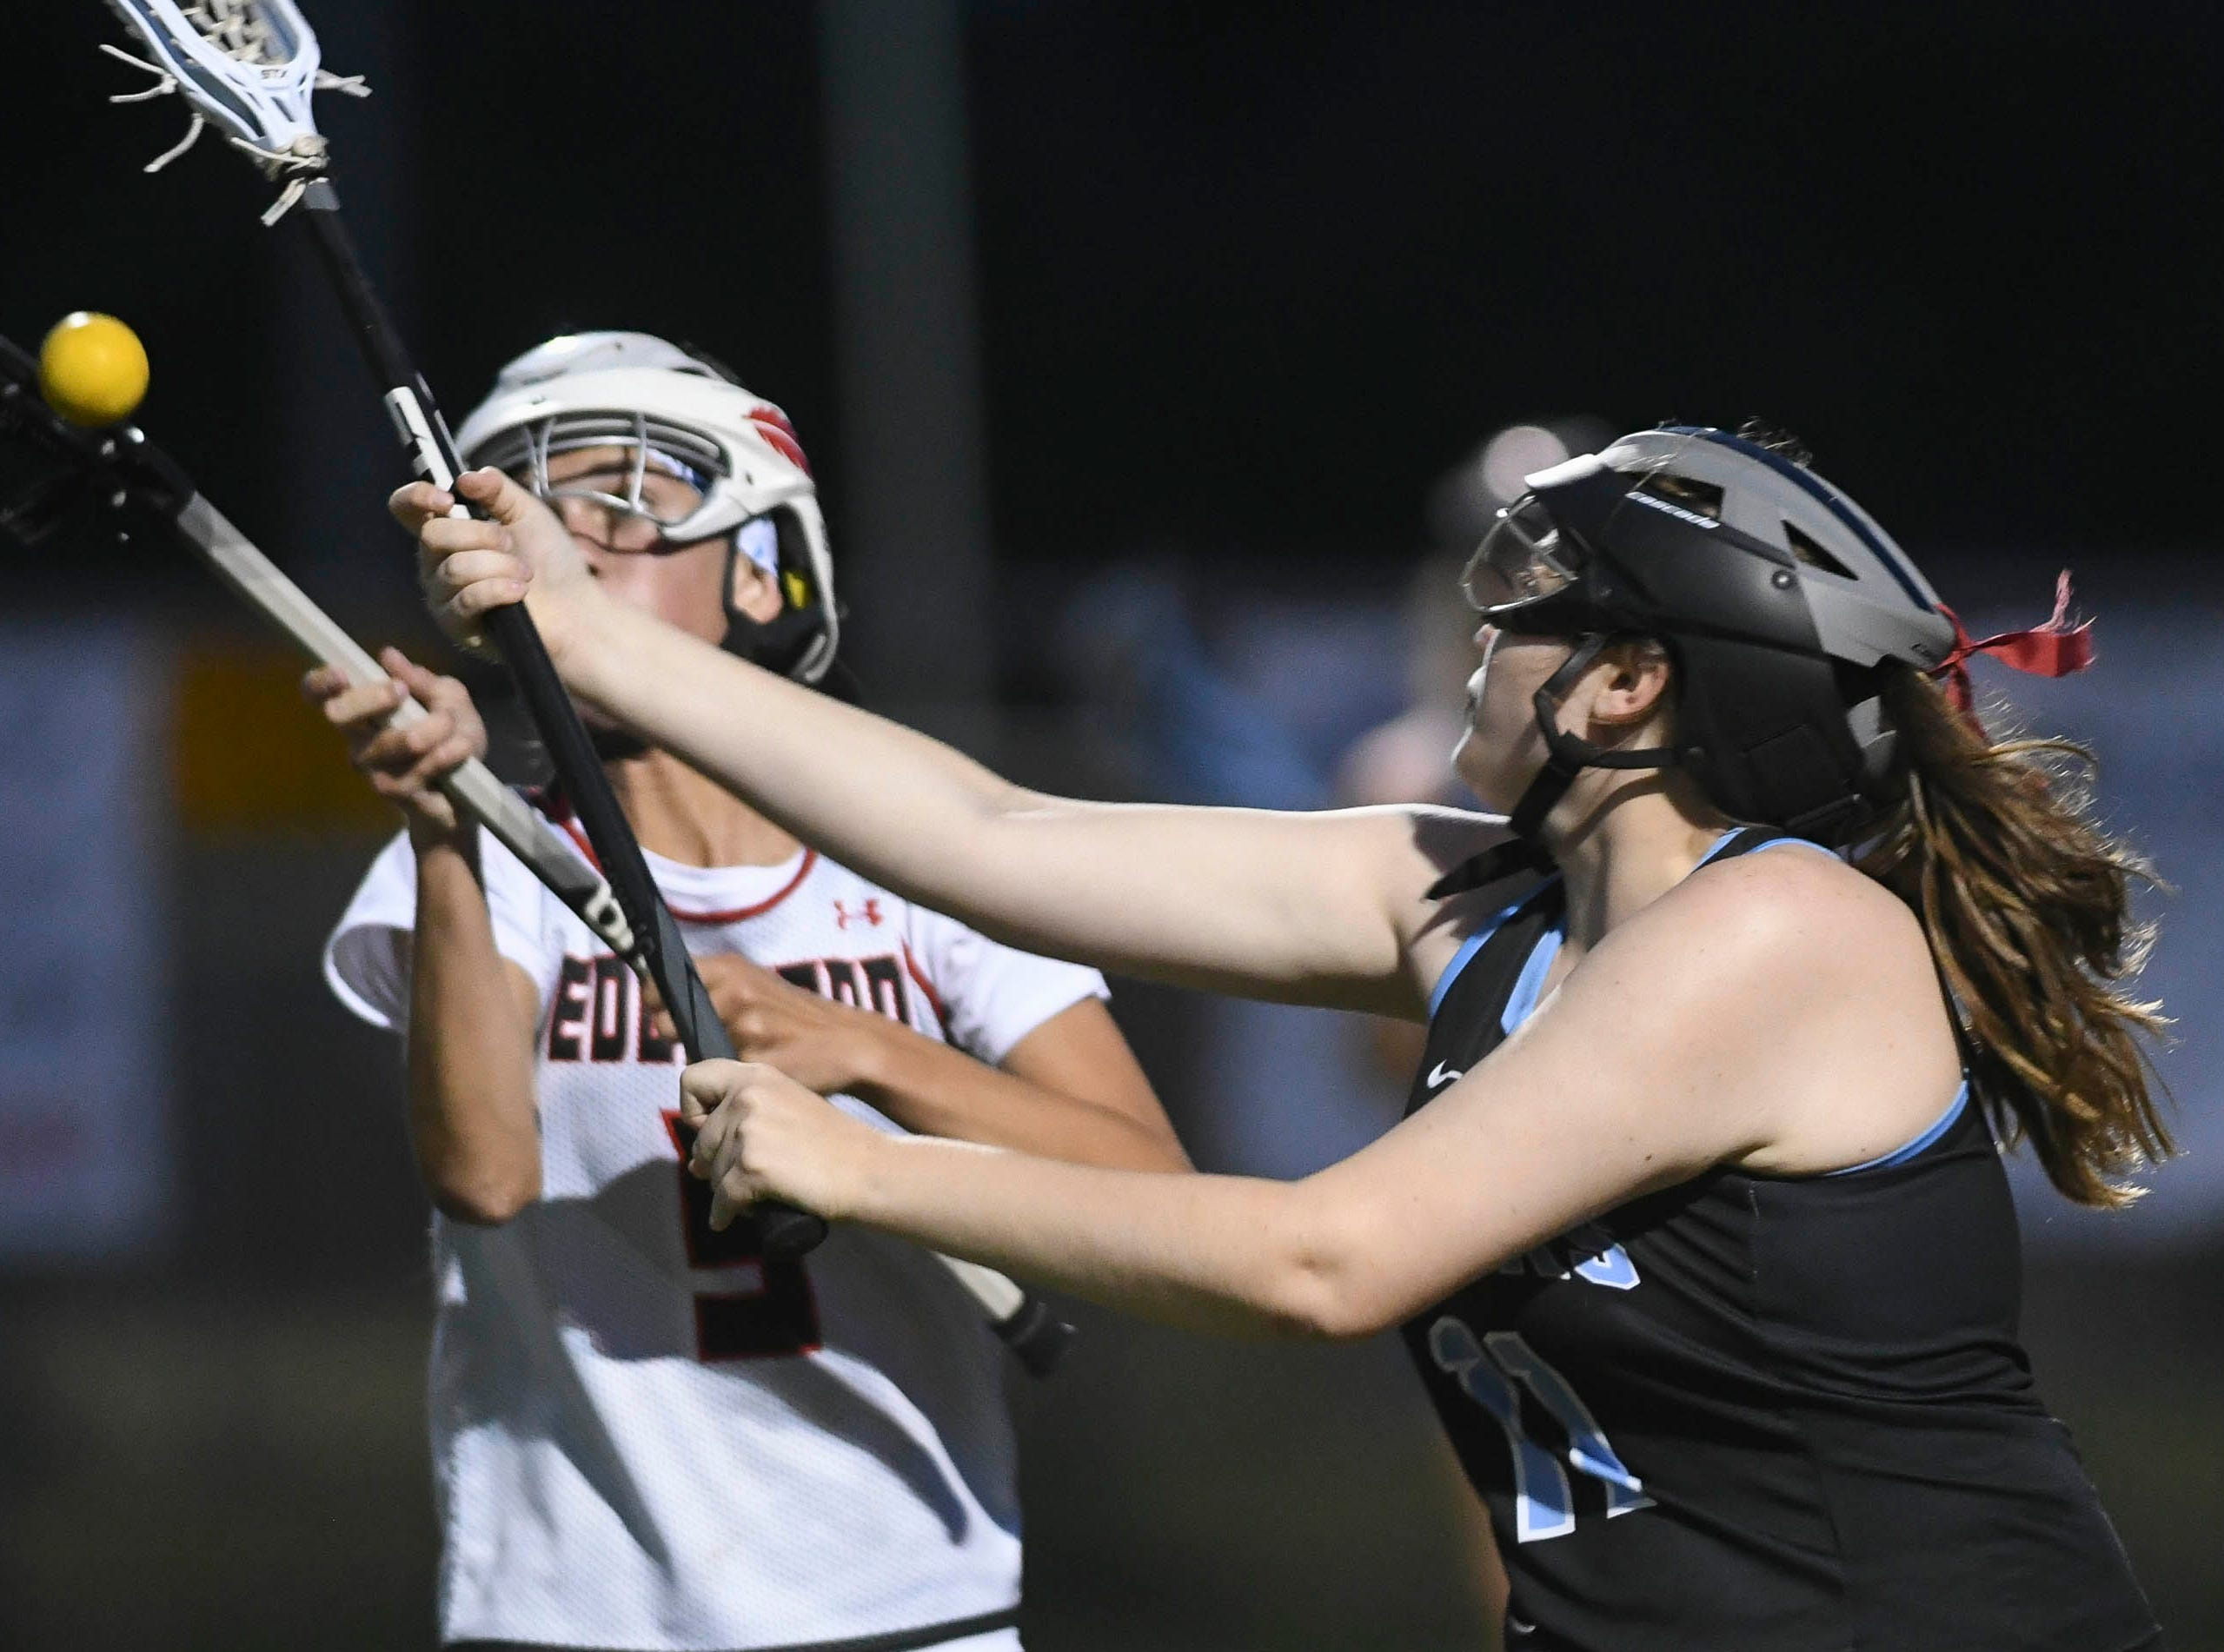 Taylor Koshlap of Edgewood and Lauren Carmichael of Rockledge chase the ball during Tuesday's game.